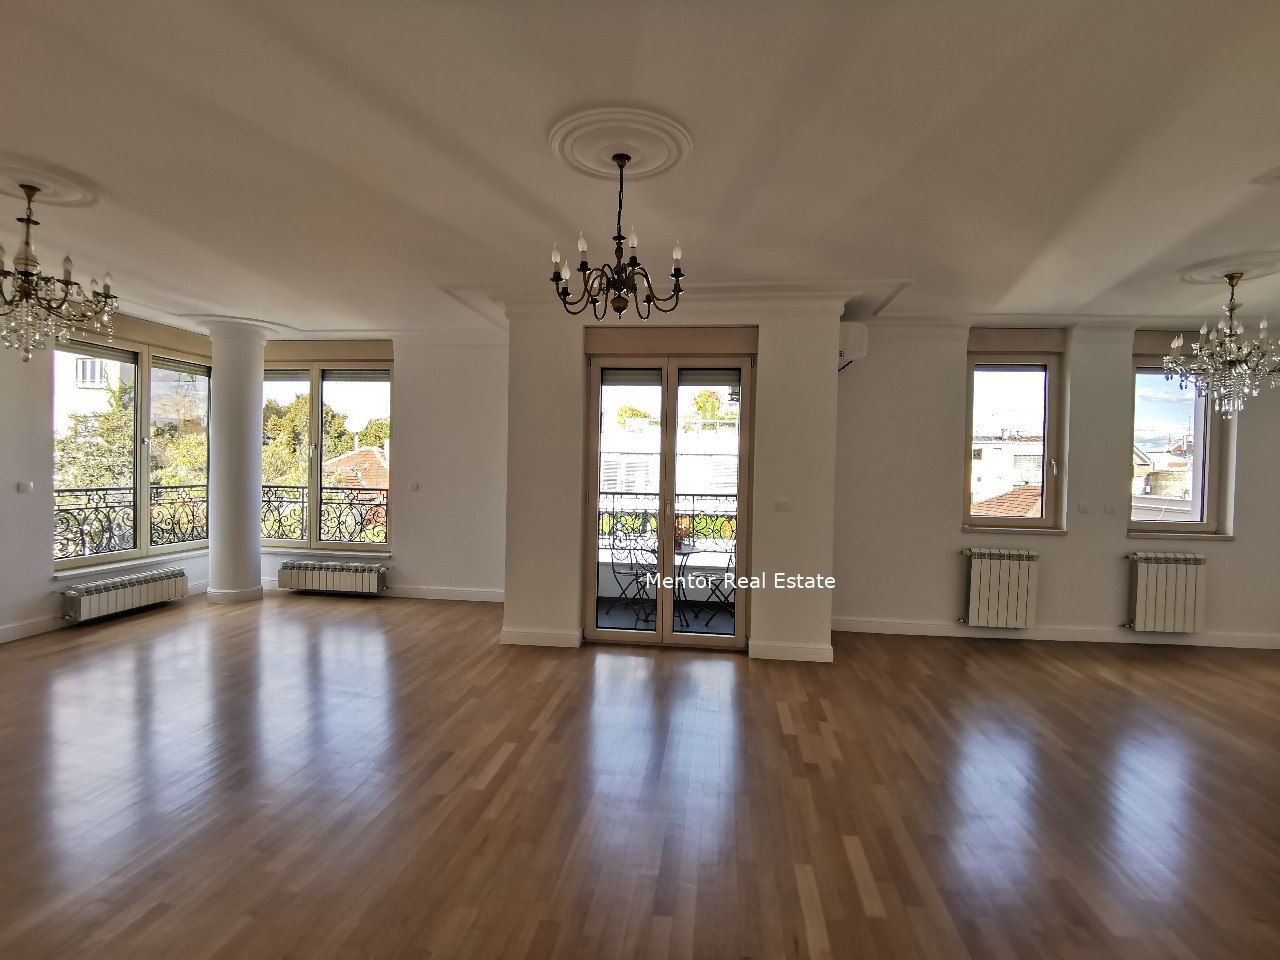 Vračar 220 sqm luxury apartment for rent